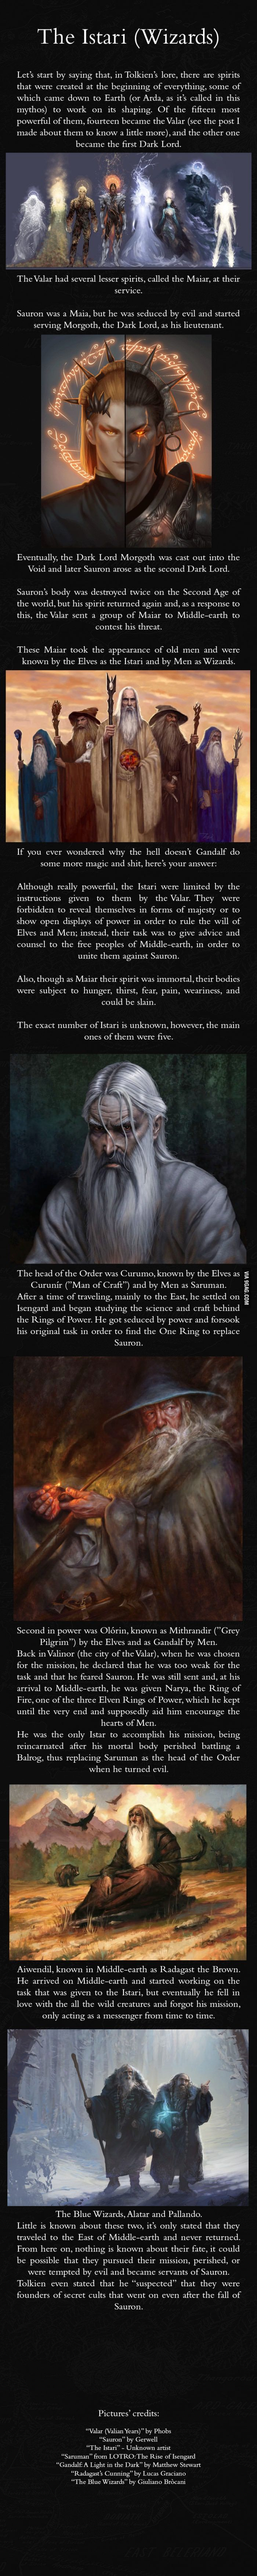 Background knowledge of the wizards